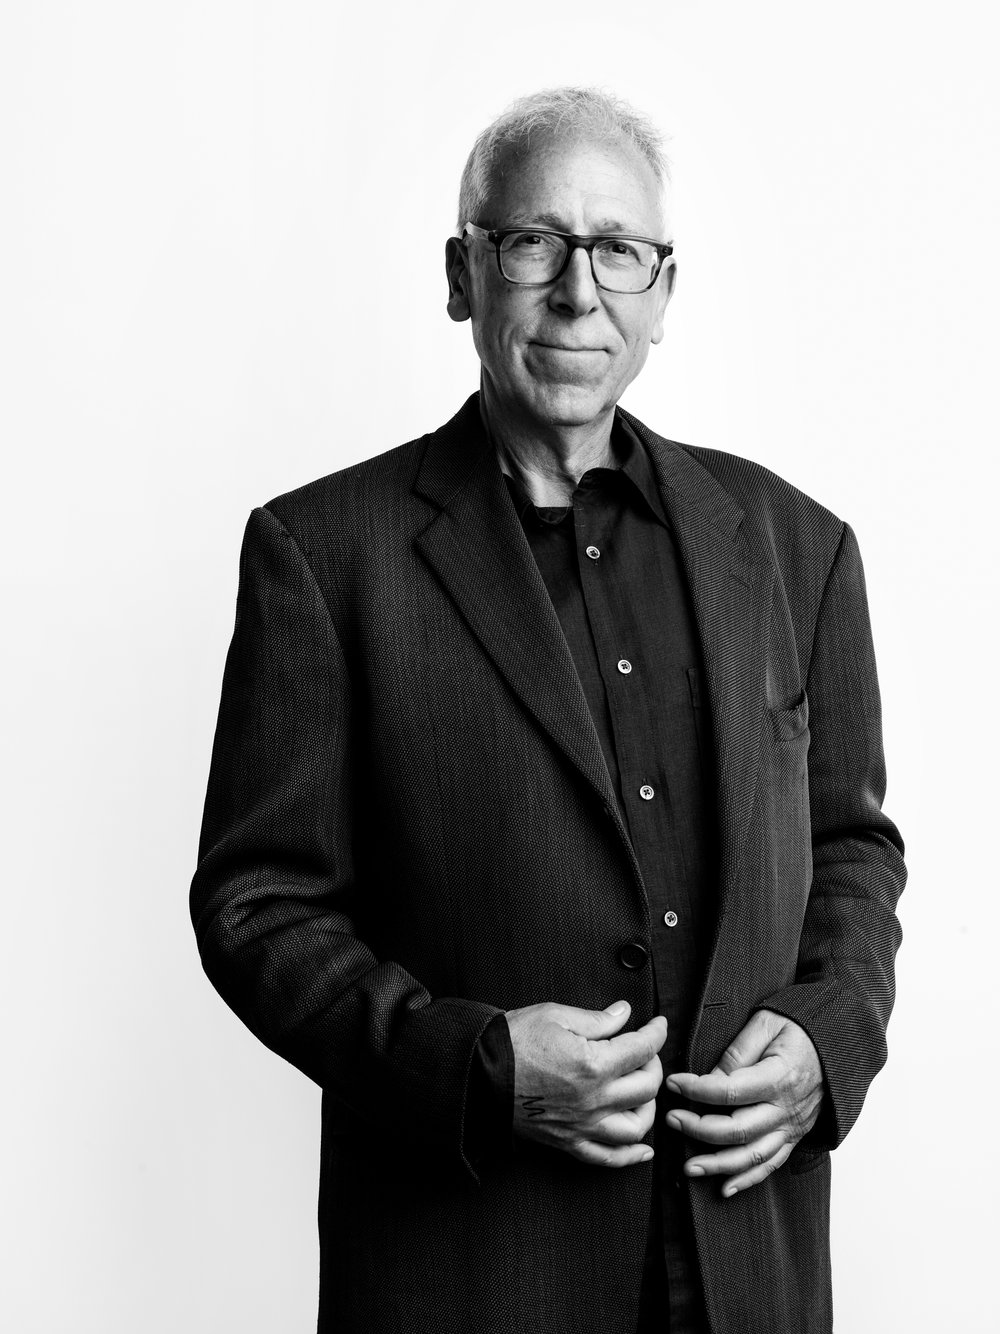 ROBERT FRIEDMAN | EDITOR IN CHIEF, 1985-1986